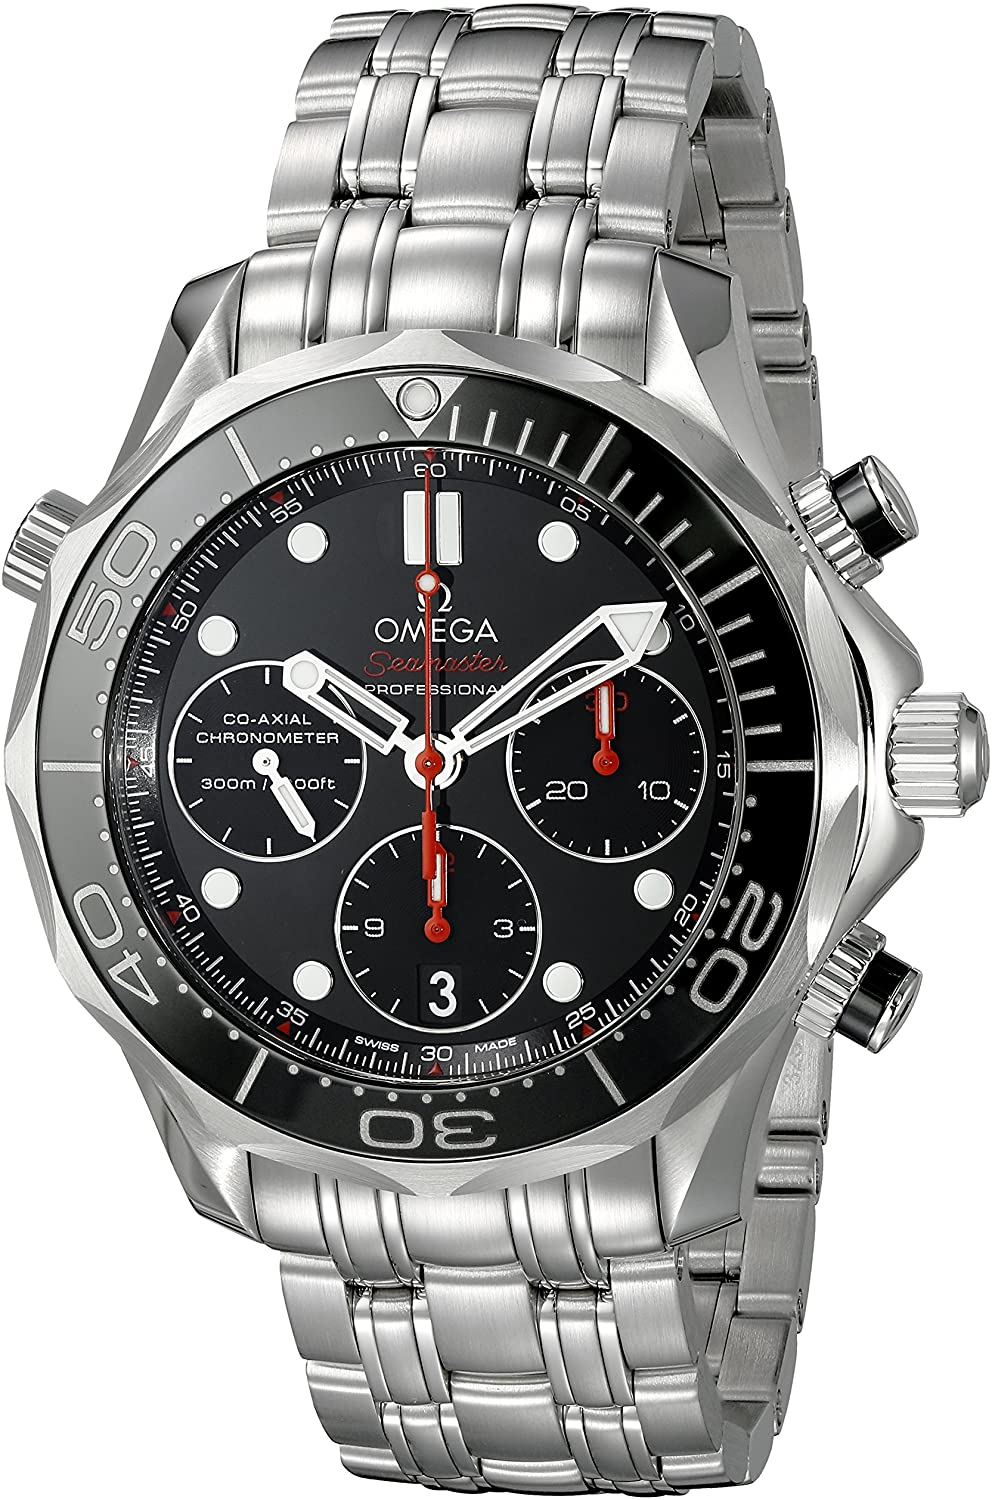 Omega Seamaster Diver 300 M Co-Axial Chronograph 41.5 mm Mens Watch 212.30.42.50.01.001